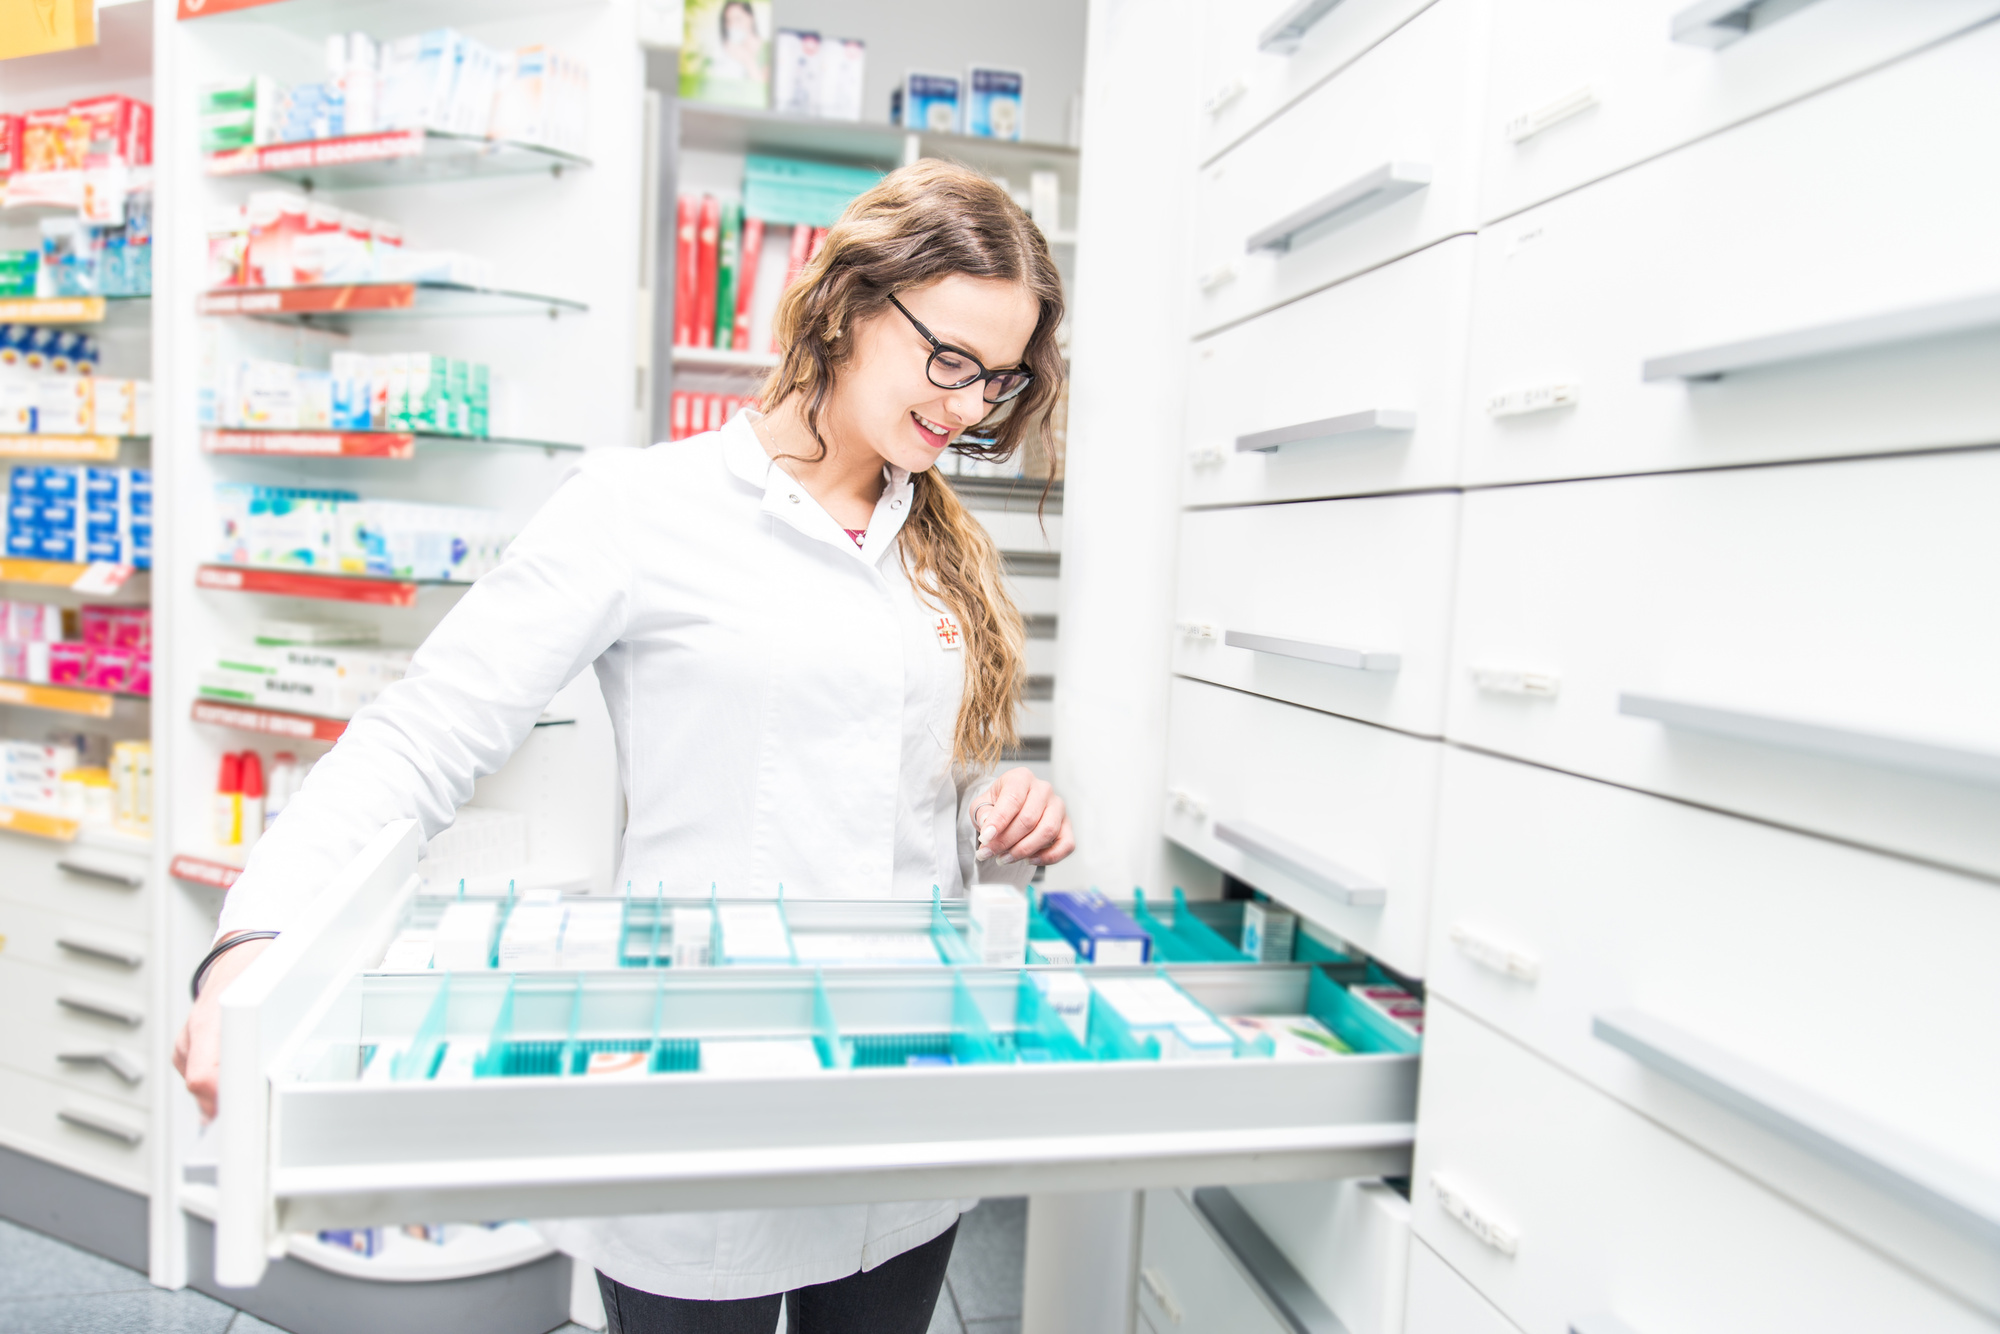 If you're looking to make getting your prescriptions easier, ordering from an online pharmacy could help. Click here to learn more.